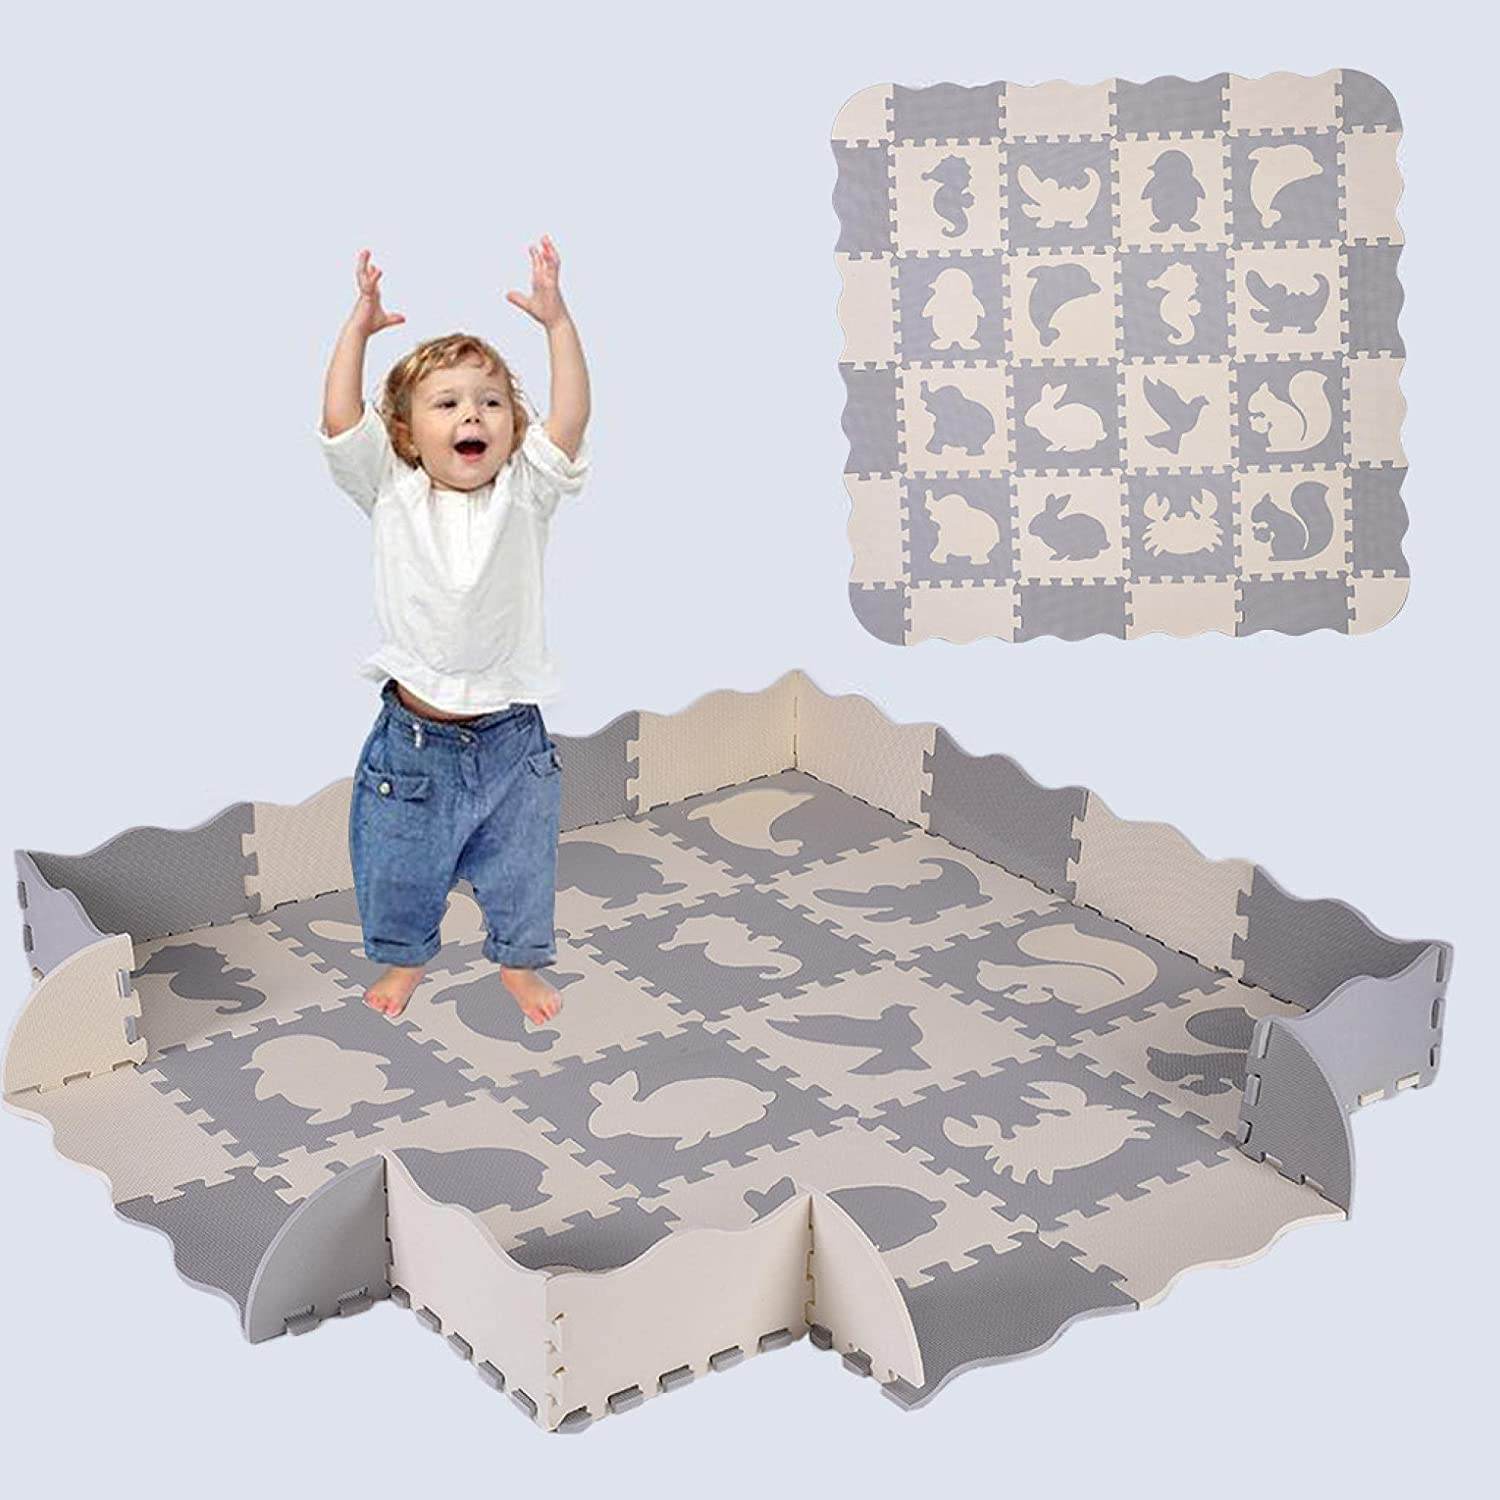 36 PCS Great interest Baby Play Wholesale Mat with Including Different Animals and Fence